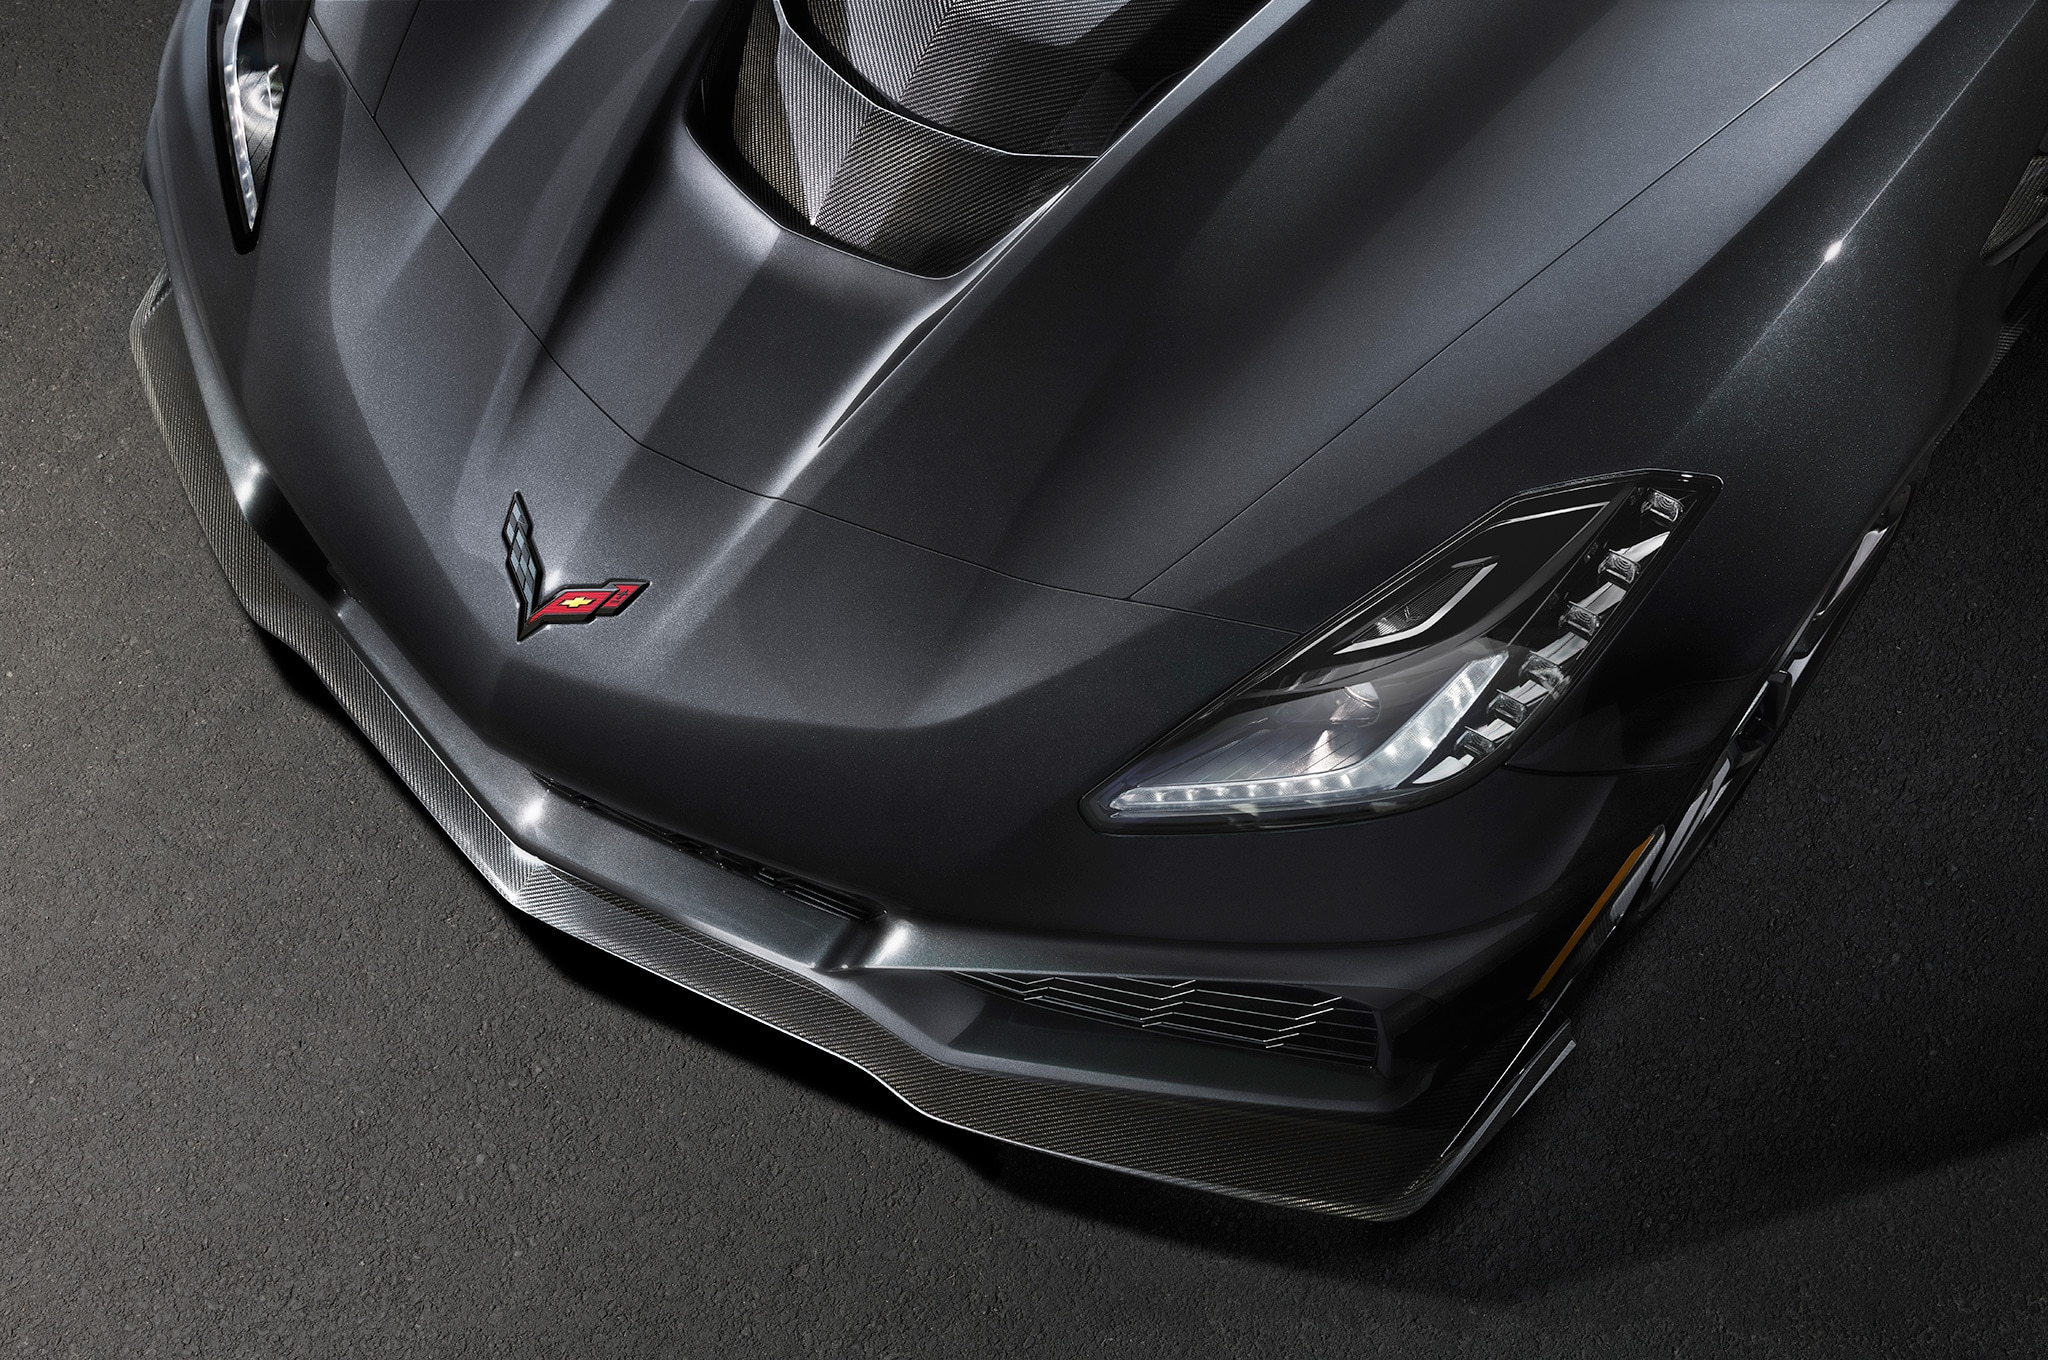 Chevrolet Declares the King is Back: 2019 Corvette ZR1 Debuts